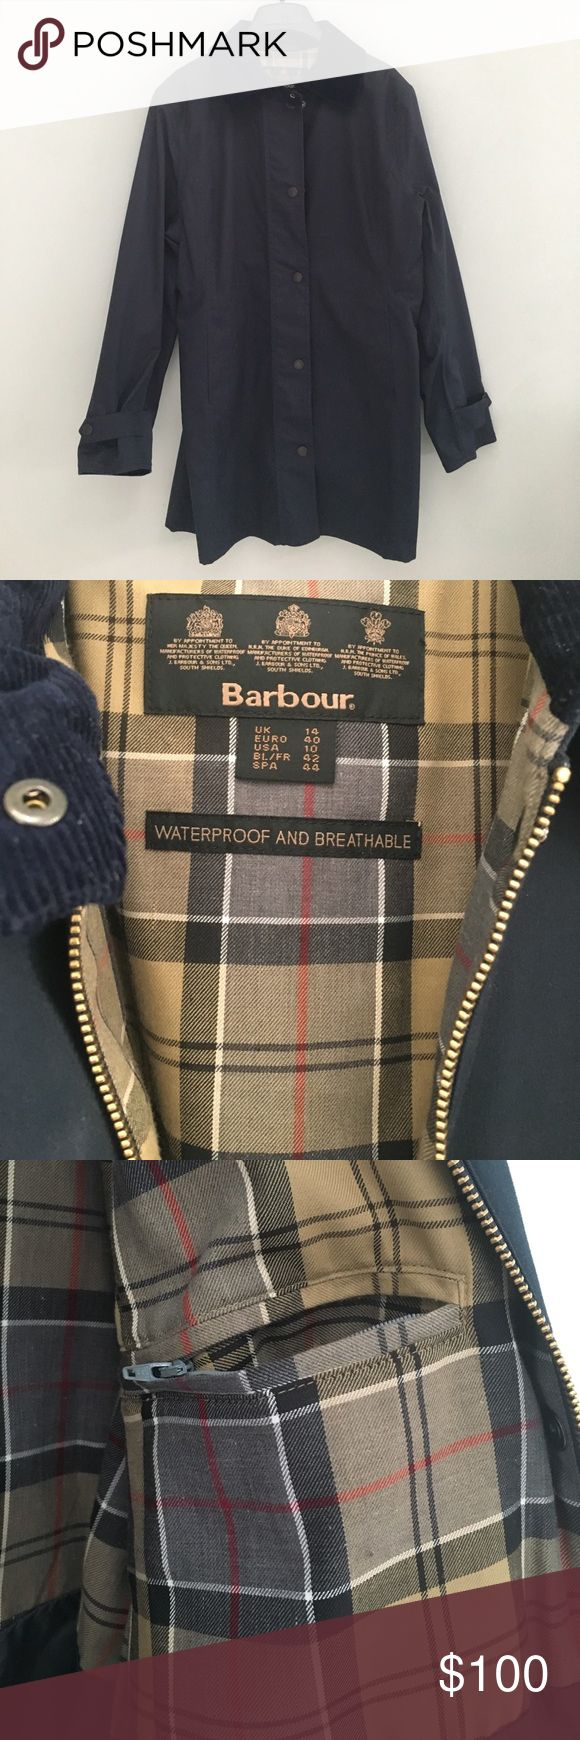 NWOT Barbour Rain Coat Never worn.  Navy Barbour raincoat.  Corduroy collar, inside zip pocket, 2 front pockets, front zip and overlapping snaps.  US Size 10 but plenty roomy for sweater underneath.   32-inches long ( from shoulder).  22-inches armpit to armpit. Barbour Jackets & Coats Utility Jackets